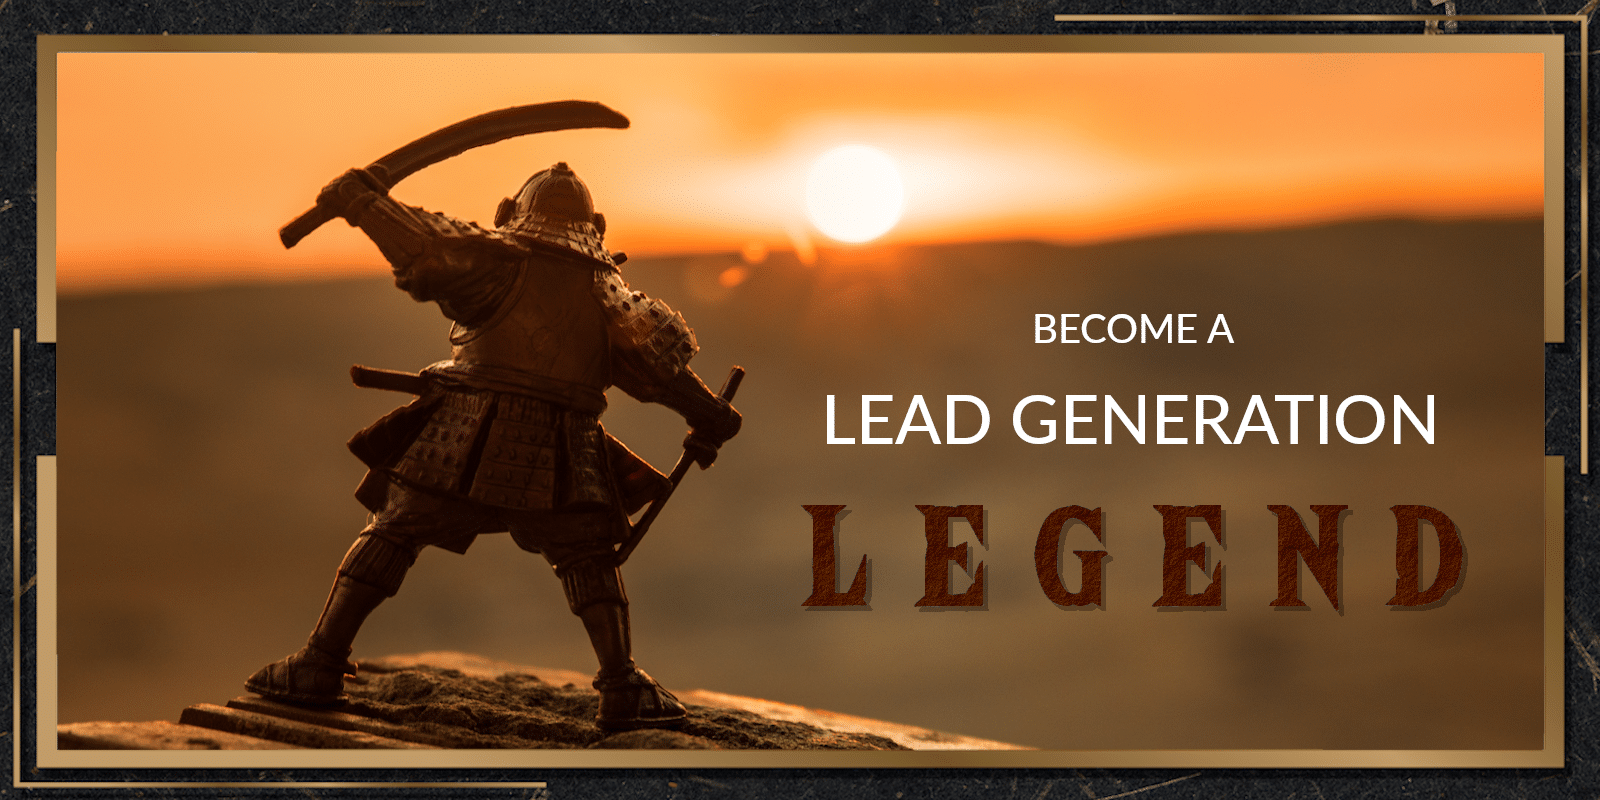 Become a Lead Generation Legend